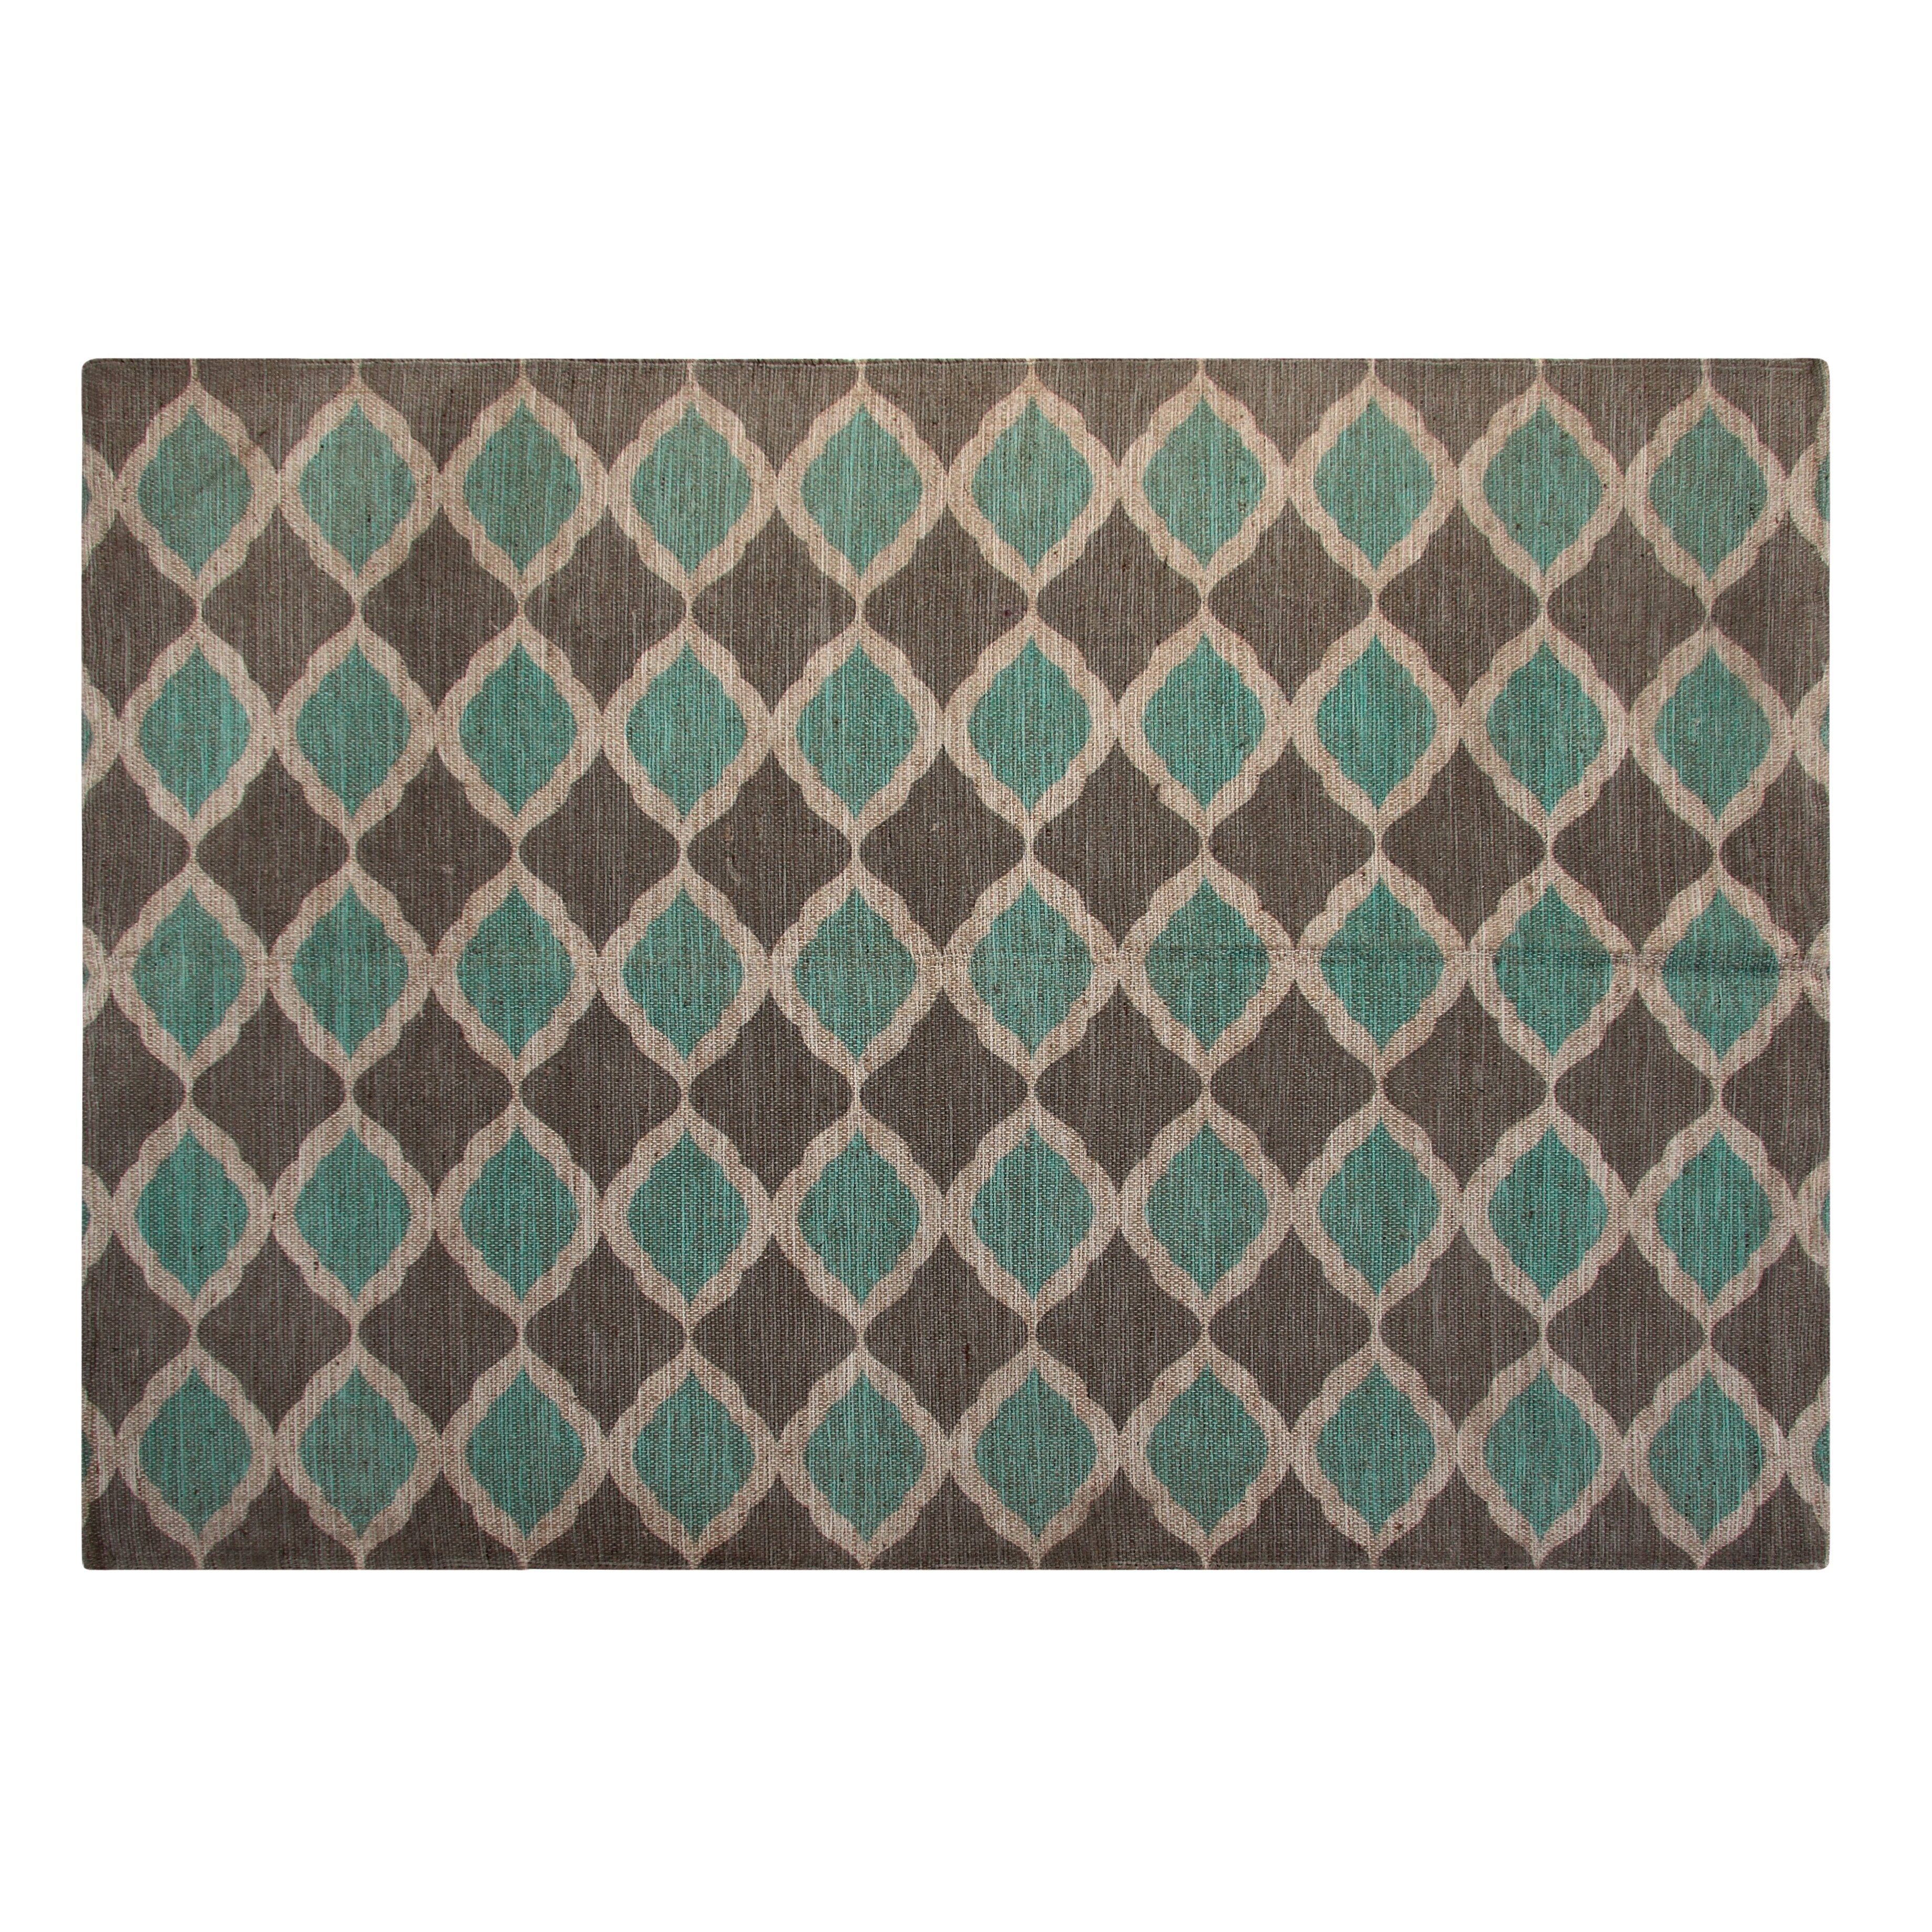 Printed Turquoise and Taupe Matrix Geometric Outdoor Area